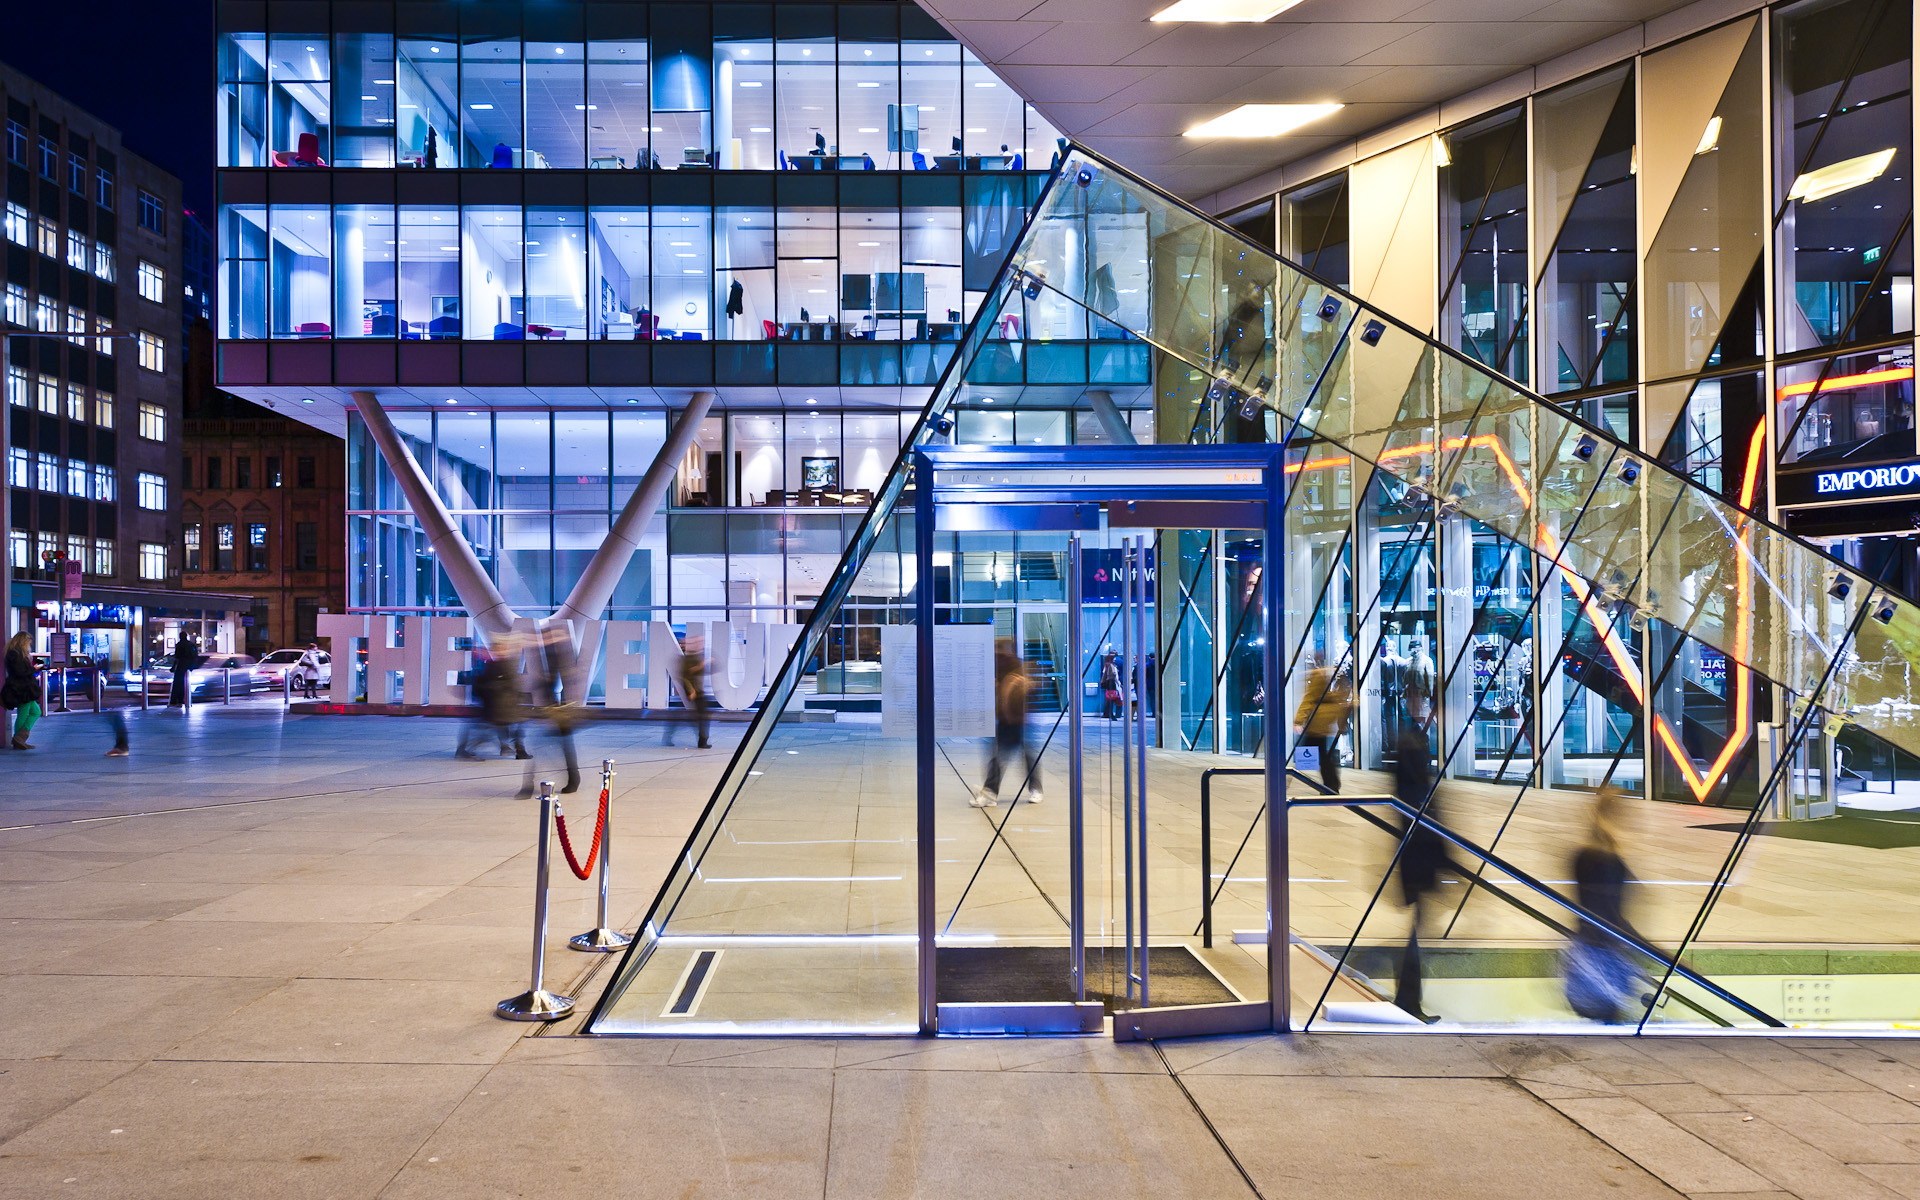 Australasia glass entrance + Avenue Manchester Spinningfileds architectural photography